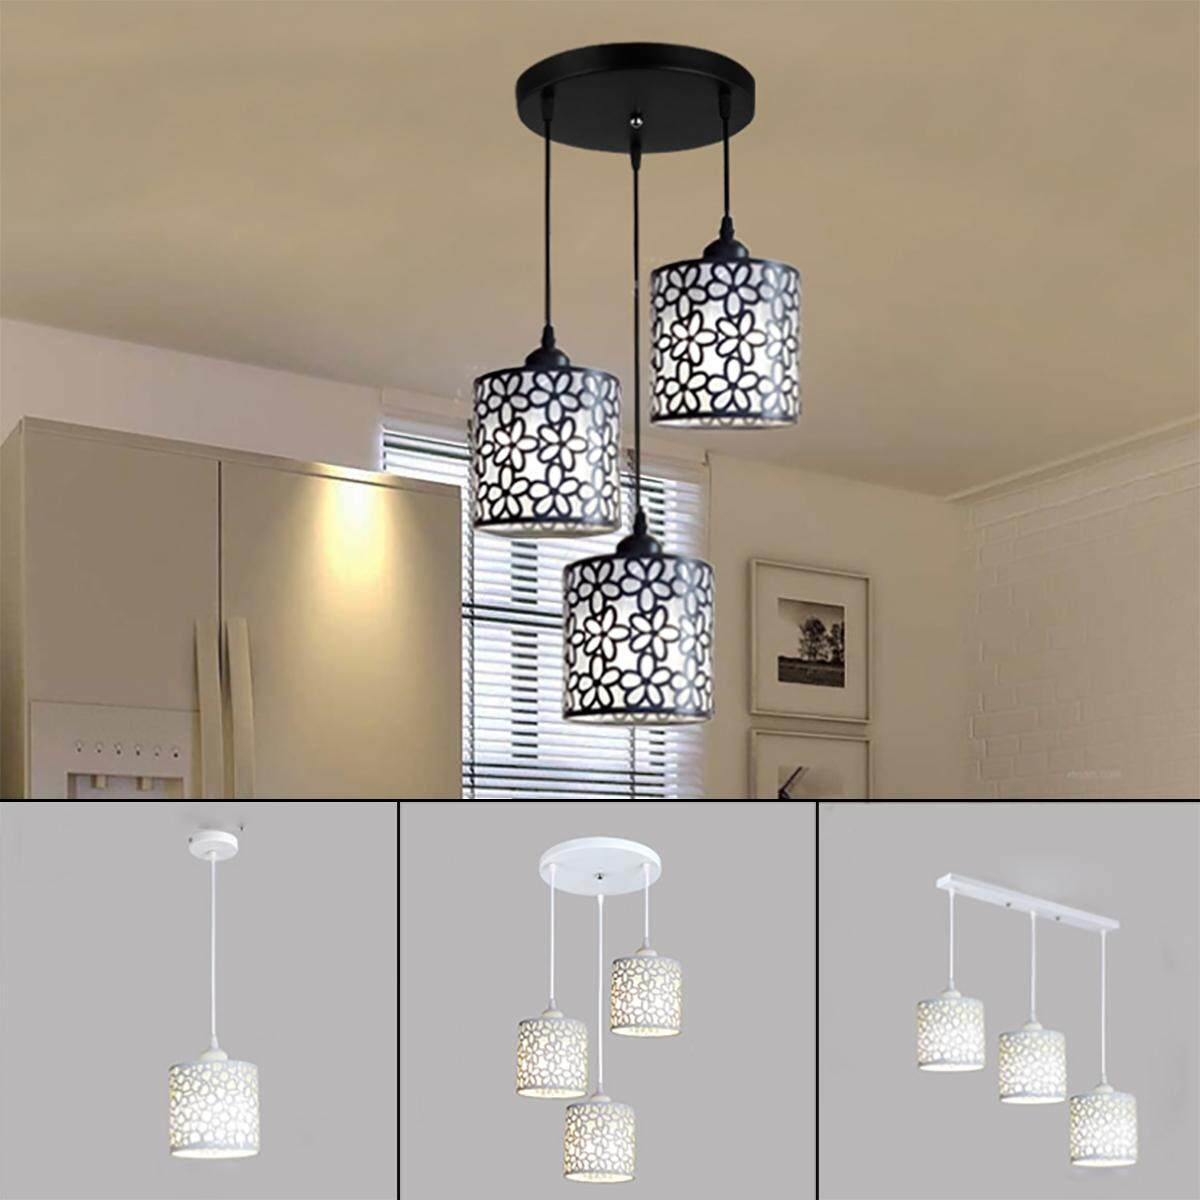 New Fashion Antique Gold Chandelier Crystal Lighting For Dining Room Shopcase Glass Shade Home Lighting E27 Led Hotel Fixtures Luminaria Ceiling Lights & Fans Lights & Lighting